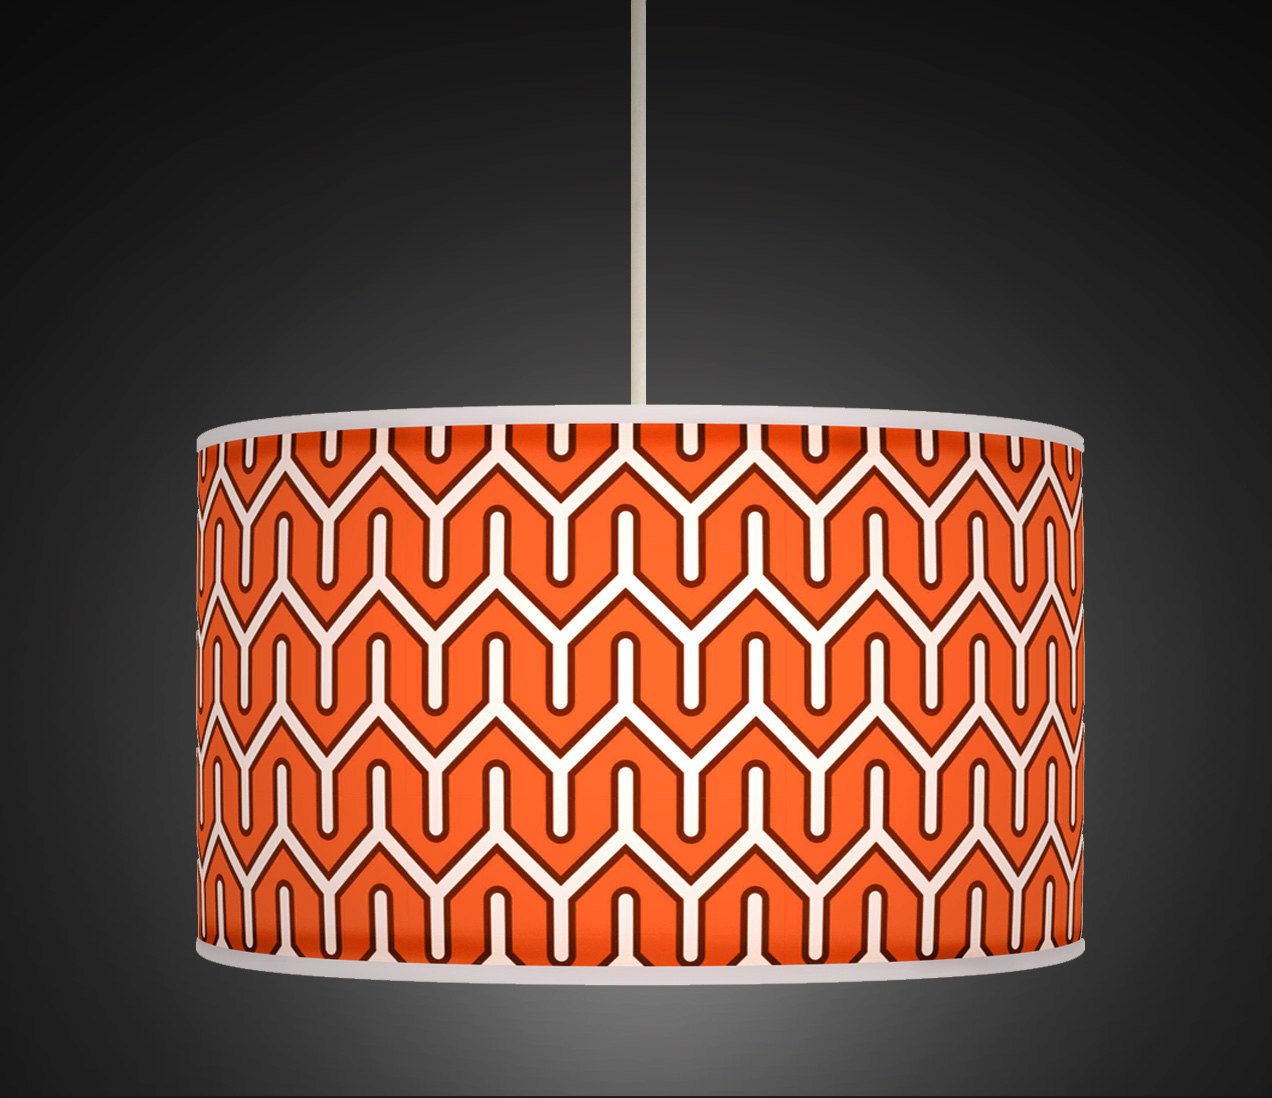 50cm 20 burnt orange white retro geometric handmade printed 50cm 20 burnt orange white retro geometric handmade printed fabric lamp drum lampshade large lampshade floor or ceiling pendant light shade 535 mozeypictures Images